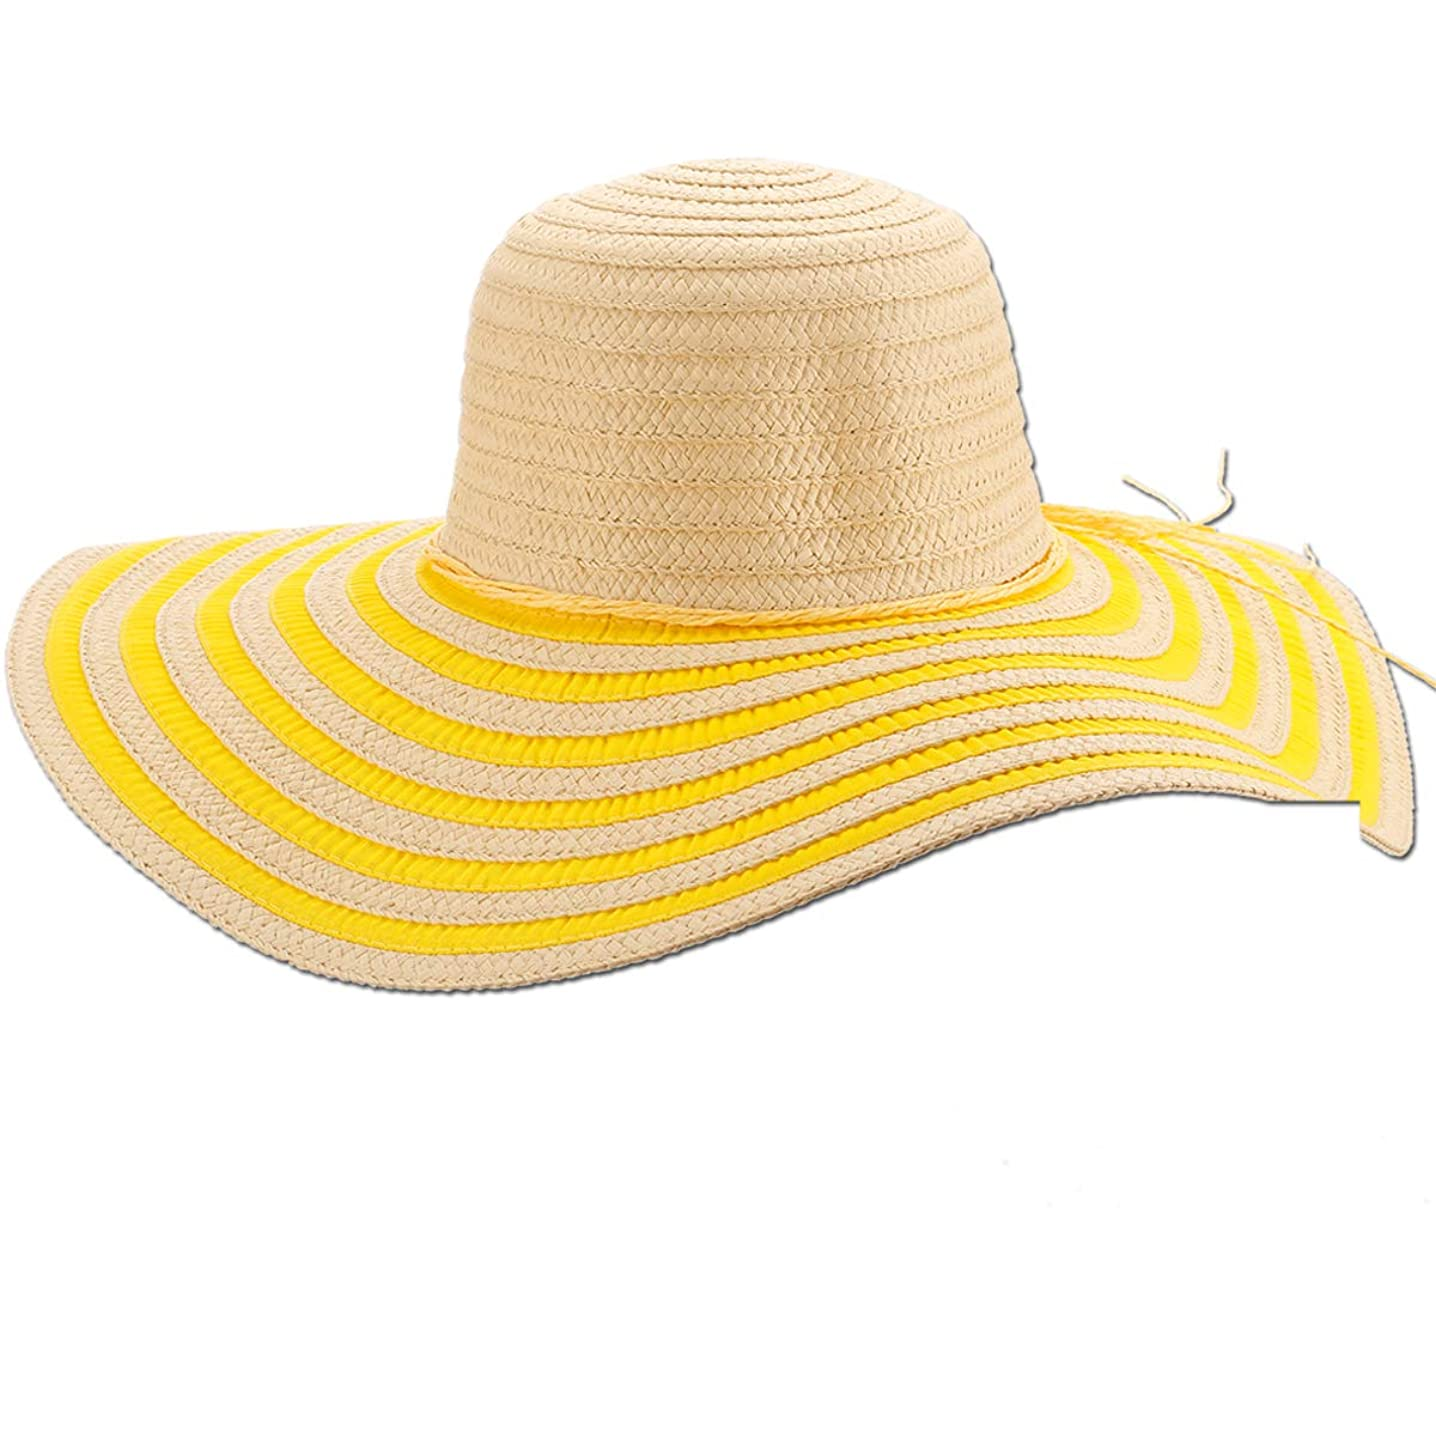 Panama Jack Women's Sun Hat - Packable, Lightweight Braid/Ribbon, UPF (SPF) 50+ Sun Protection, 5